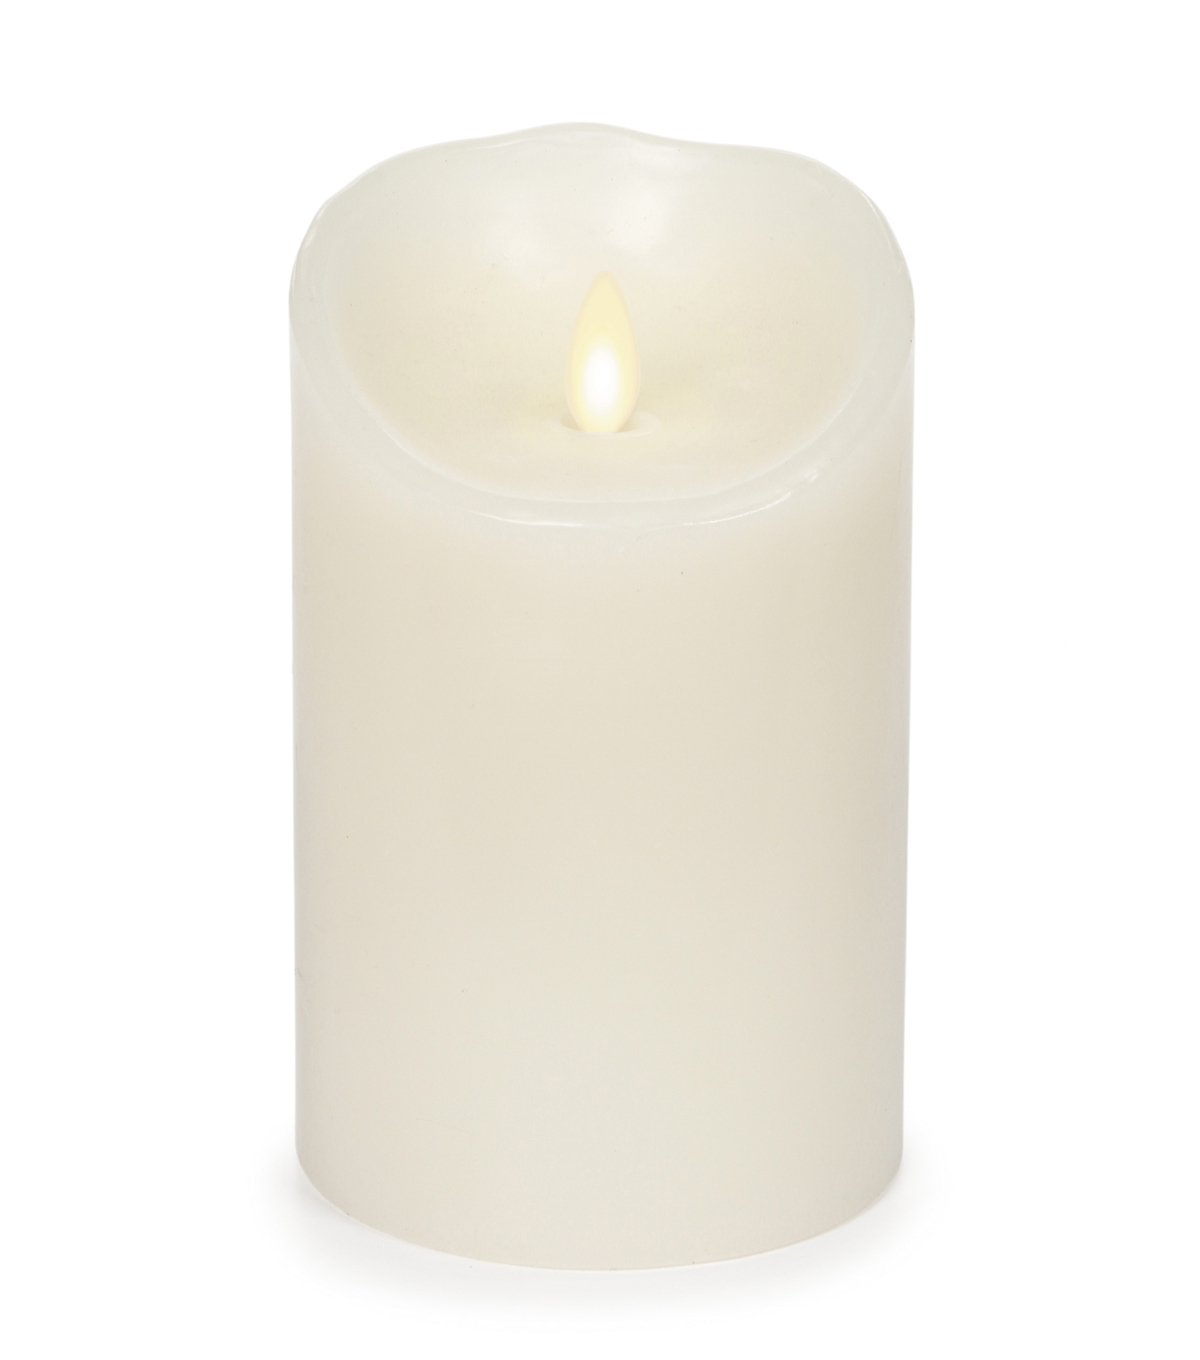 Luminara Candle & Light Collection Luminara 5In  Ivory Timer Vanilla Scent